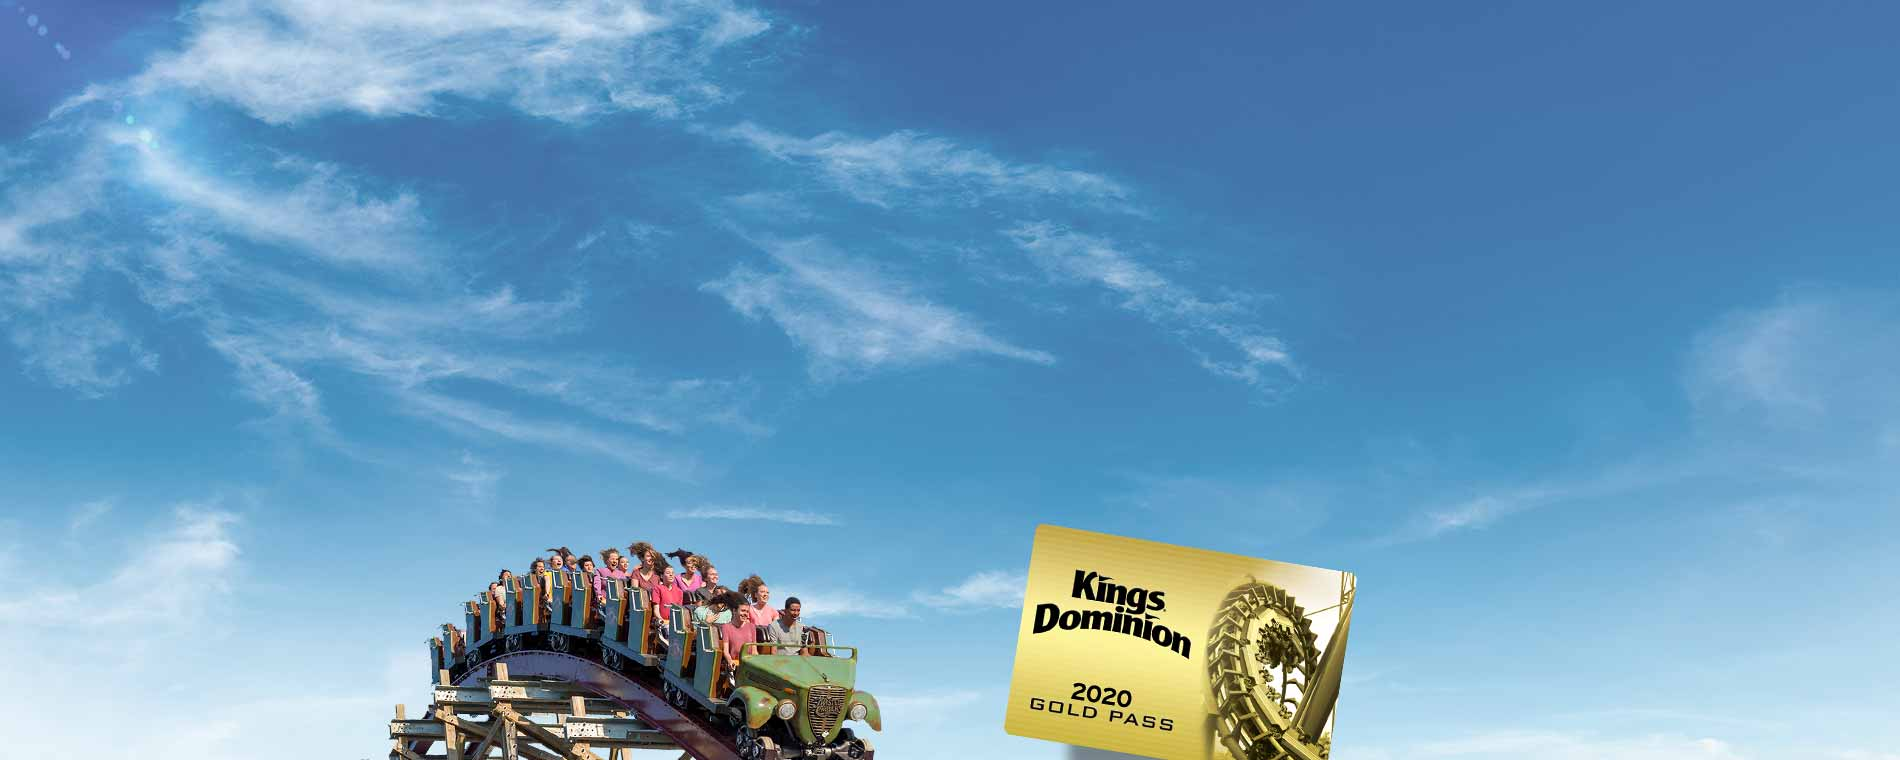 Kings Dominion Season Passes